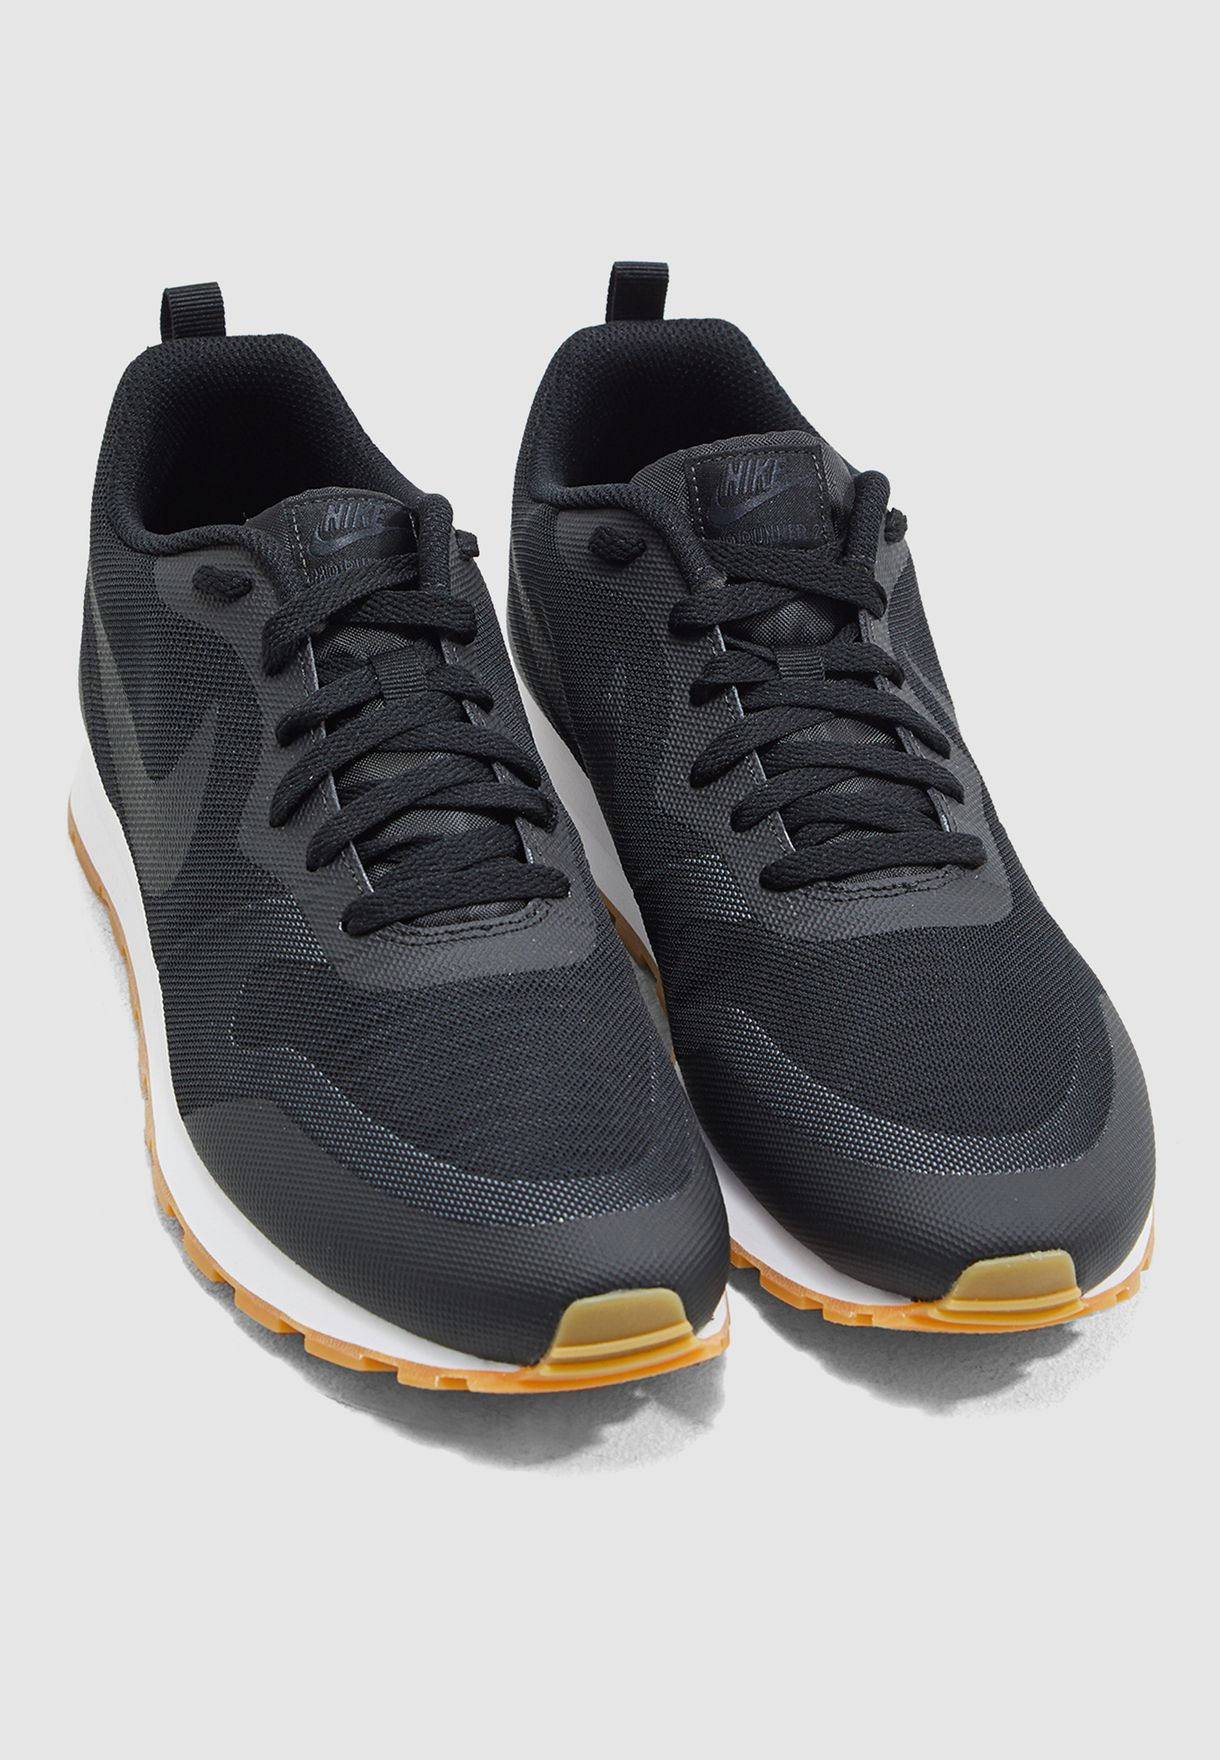 Shop Nike Black Md Runner 2 19 Ao0265 001 For Men In Saudi